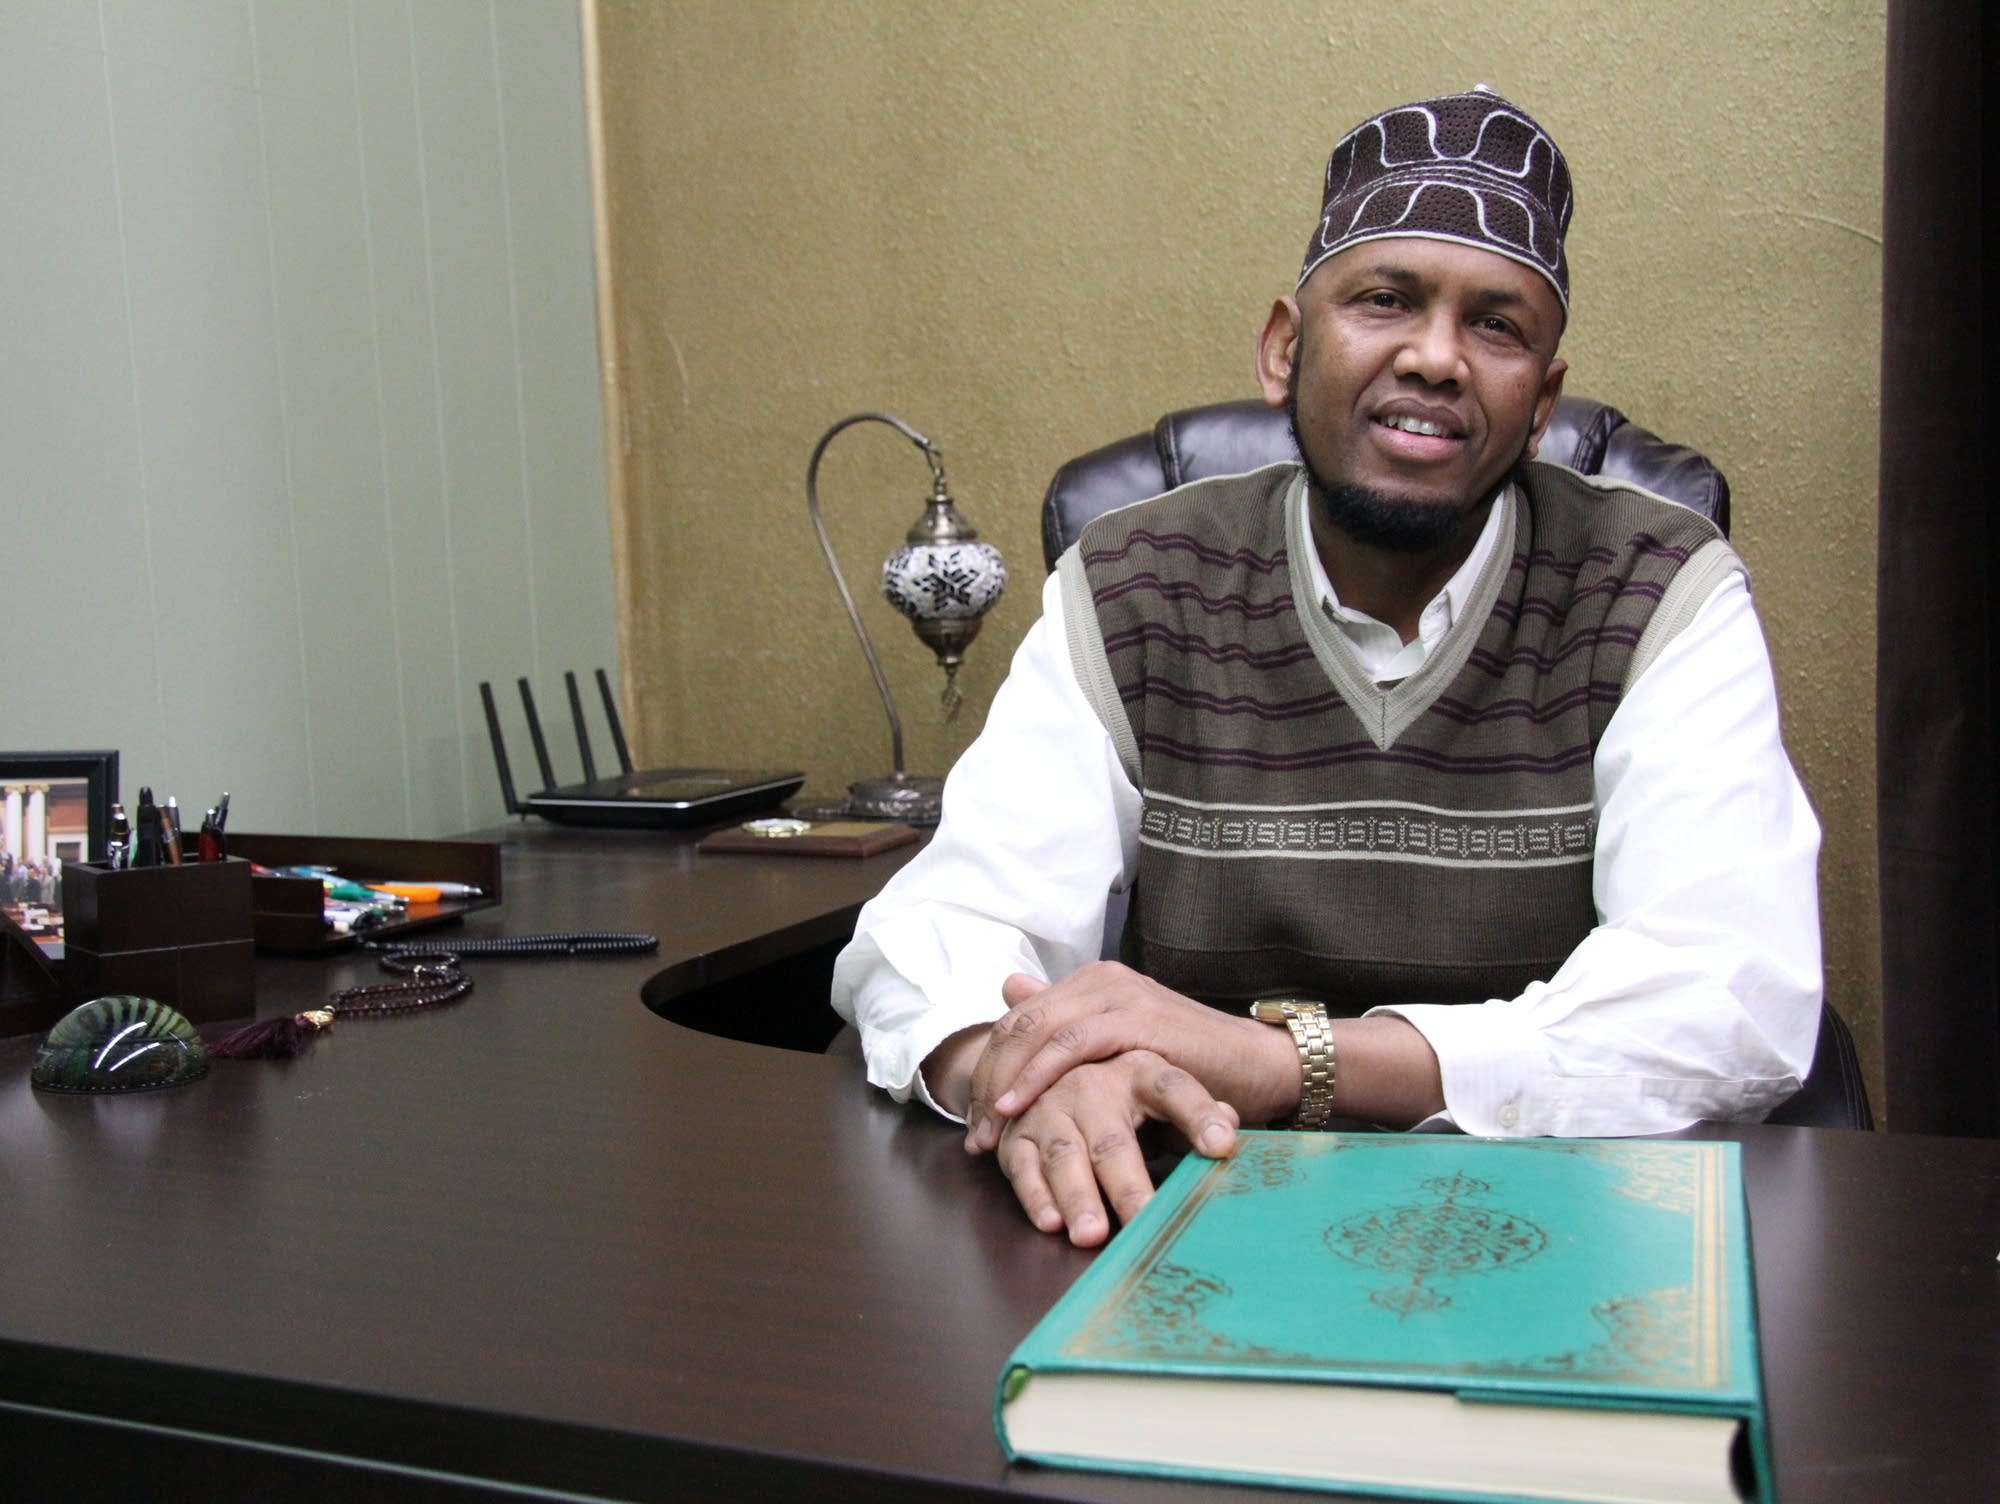 Sharif Mohamed is the imam of Dar Al Hijrah mosque in Minneapolis.